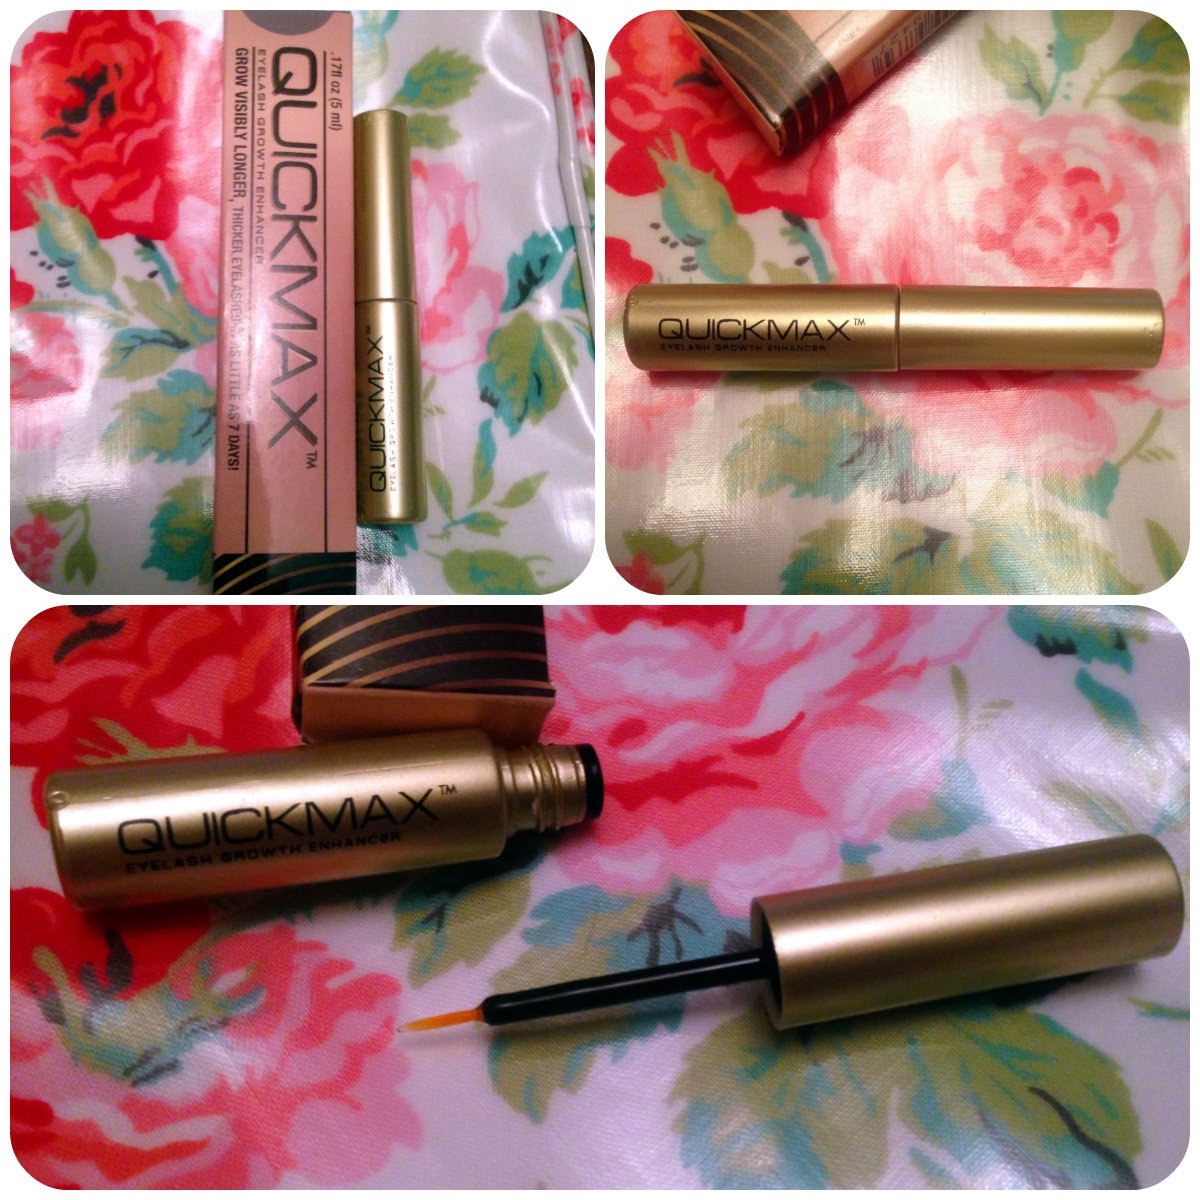 Quickmax eyelash enhancer review